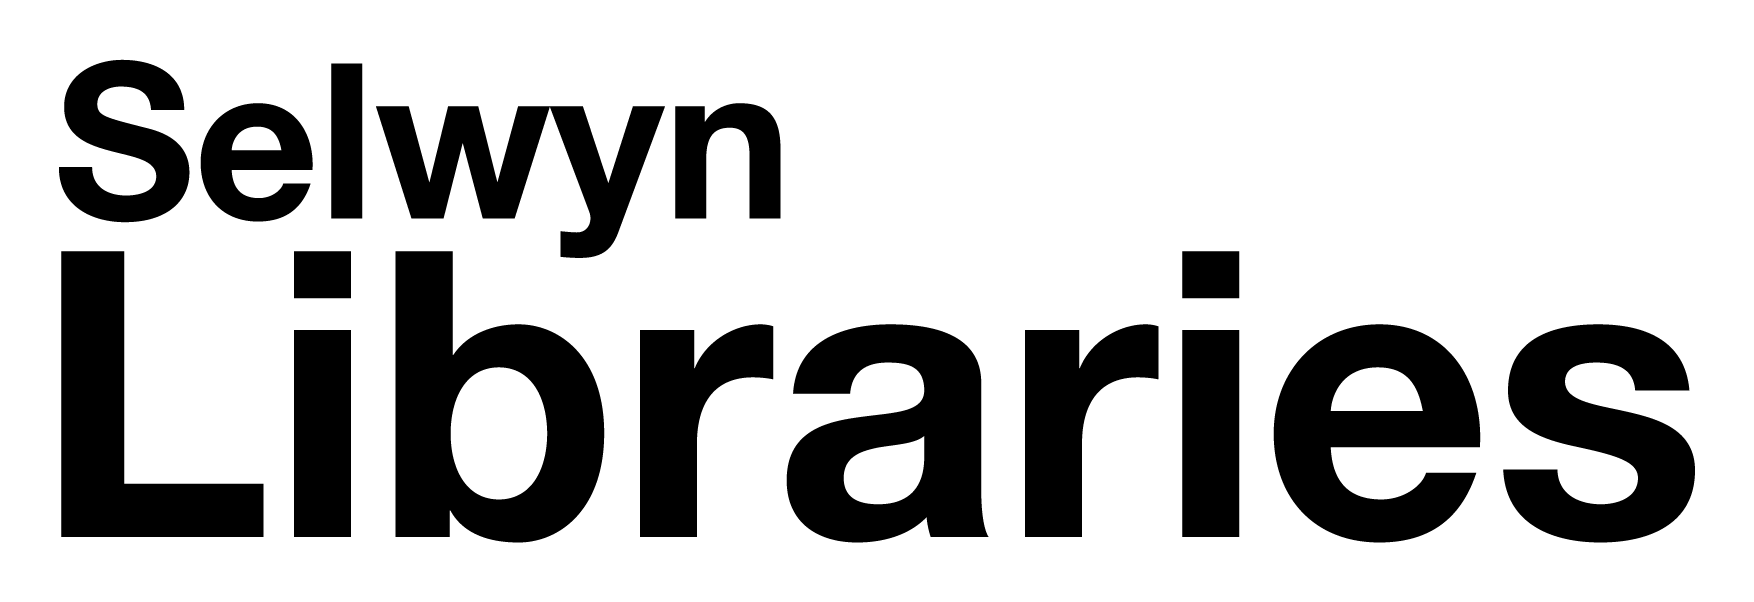 Selwyn Libraries' logo